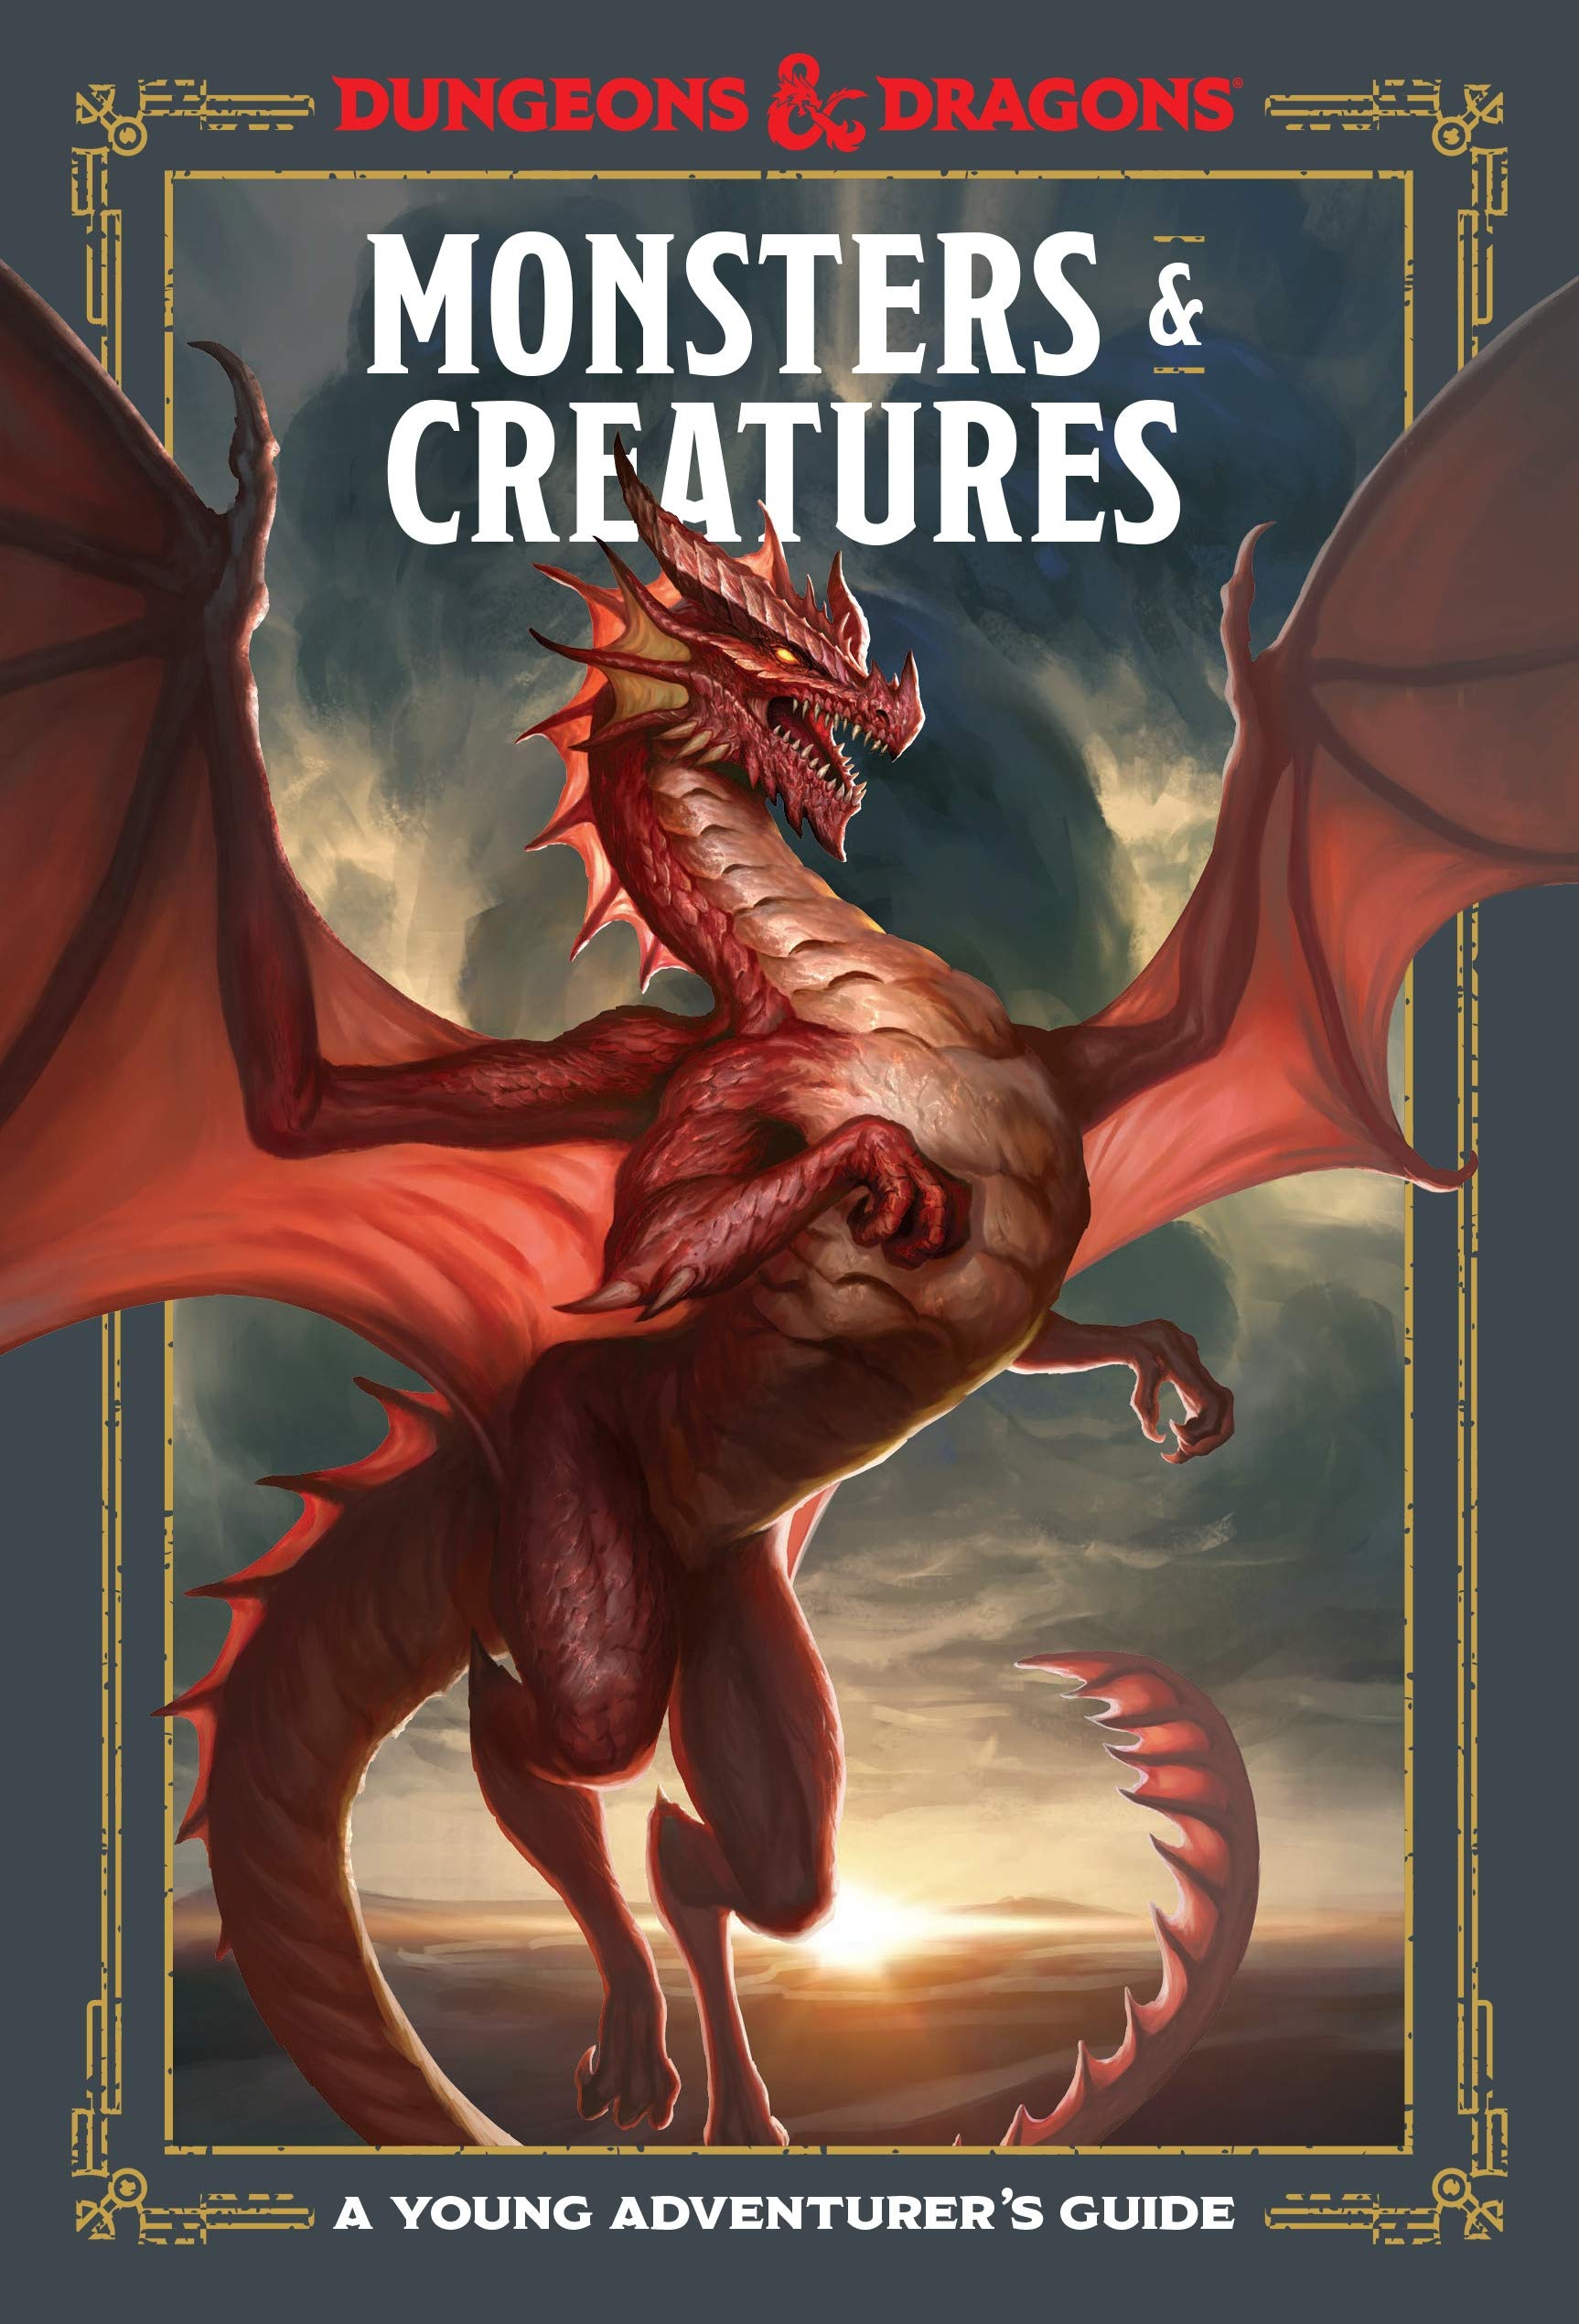 Dungeons & Dragons: Monsters & Creatures